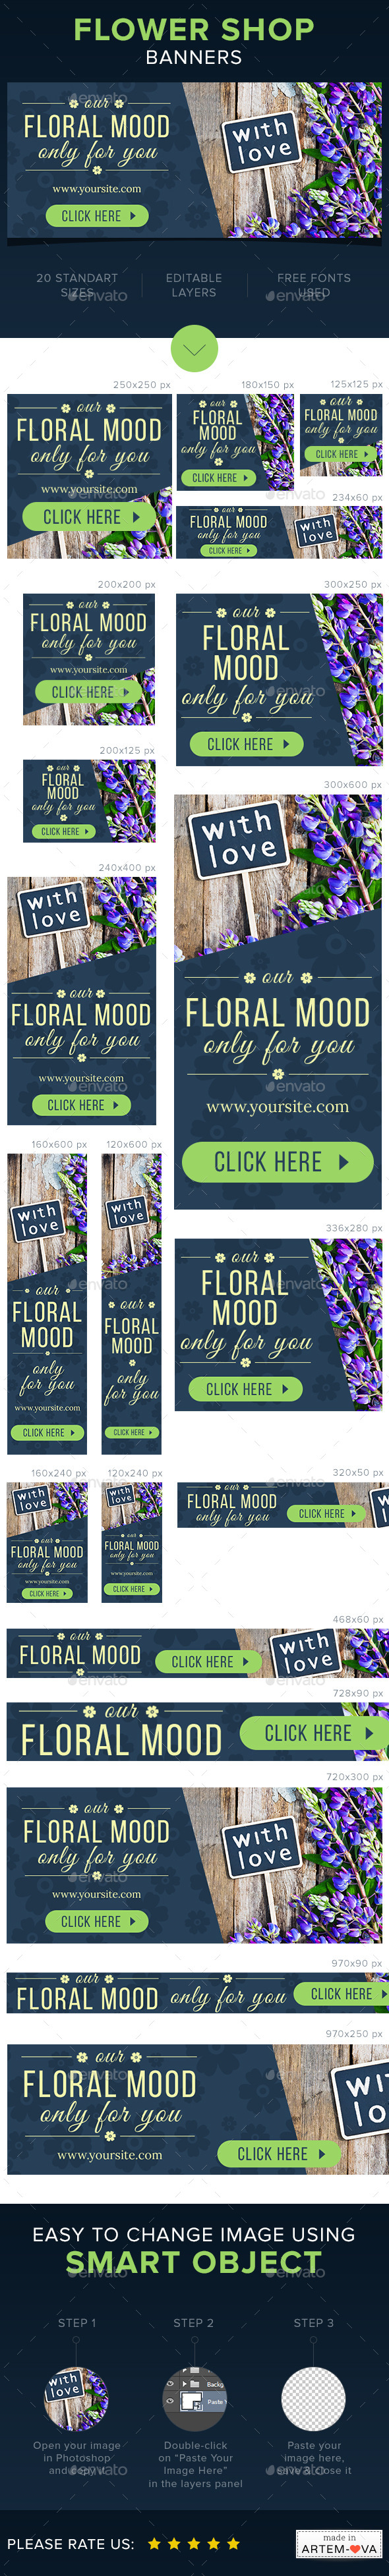 Flower Shop Banners Set - Banners & Ads Web Elements